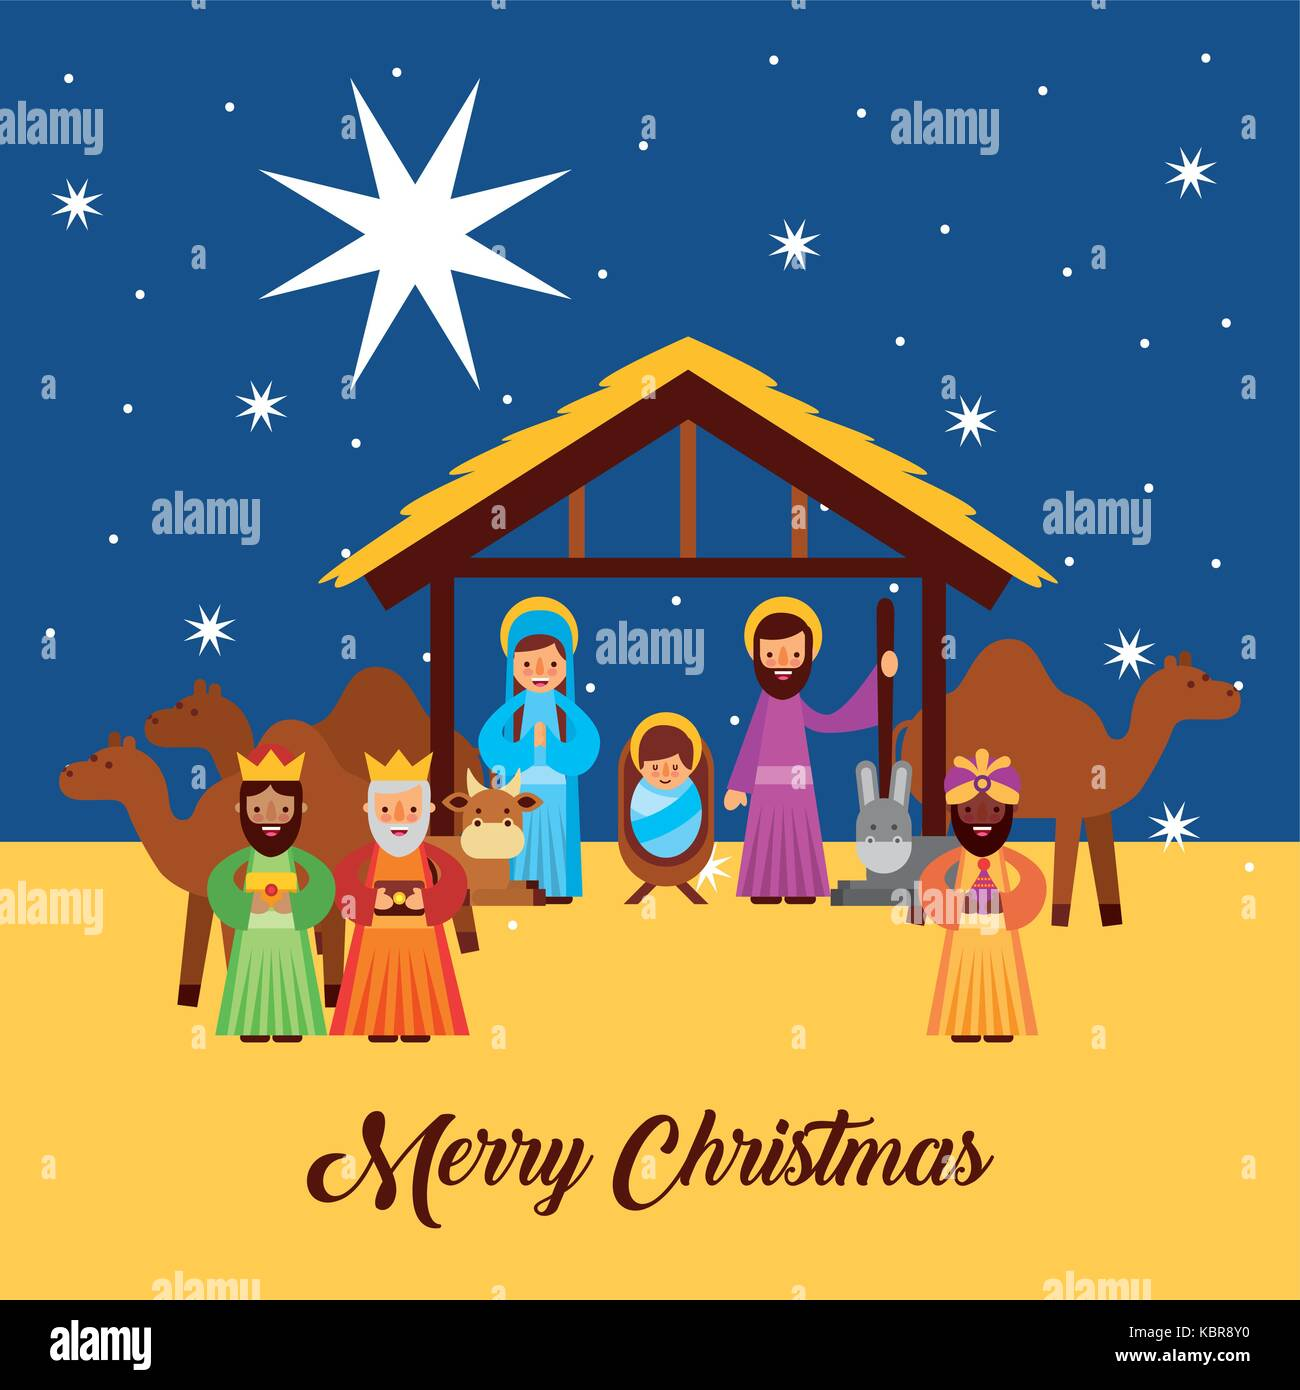 Merry christmas greetings with jesus born in manger joseph and mary merry christmas greetings with jesus born in manger joseph and mary wise king characters m4hsunfo